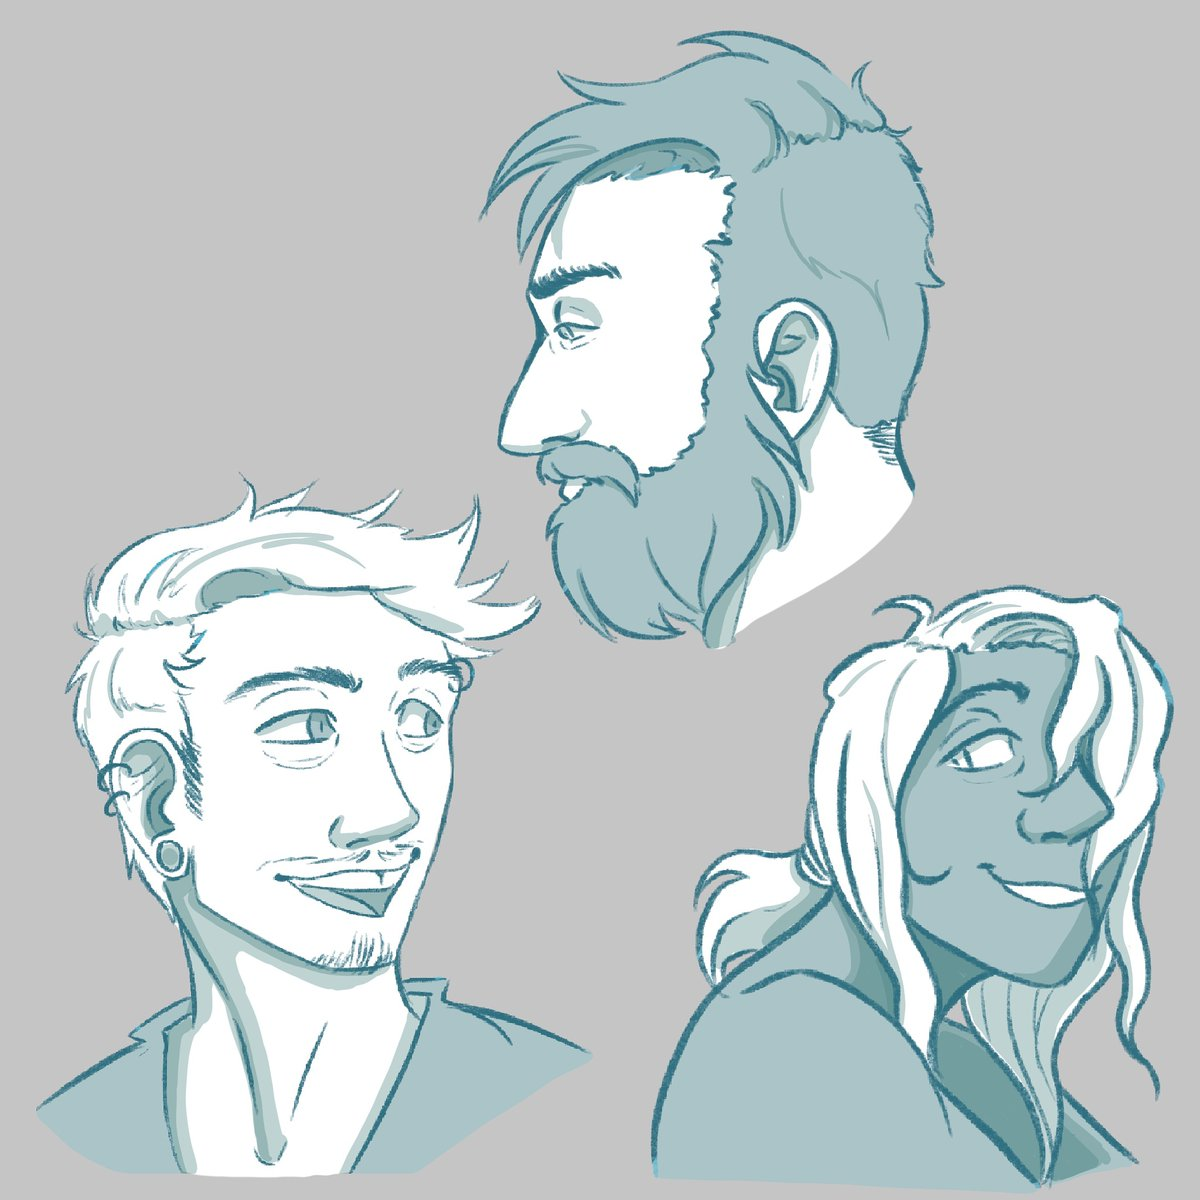 Just random peeps post, haven't doodles just some faces in a while.  #art #concept #conceptdesign #digitalart #drawing #digitaldrawing #doodle #artstudy #illustration #digital #peeps #people #sketchpic.twitter.com/1UuIgO8pus